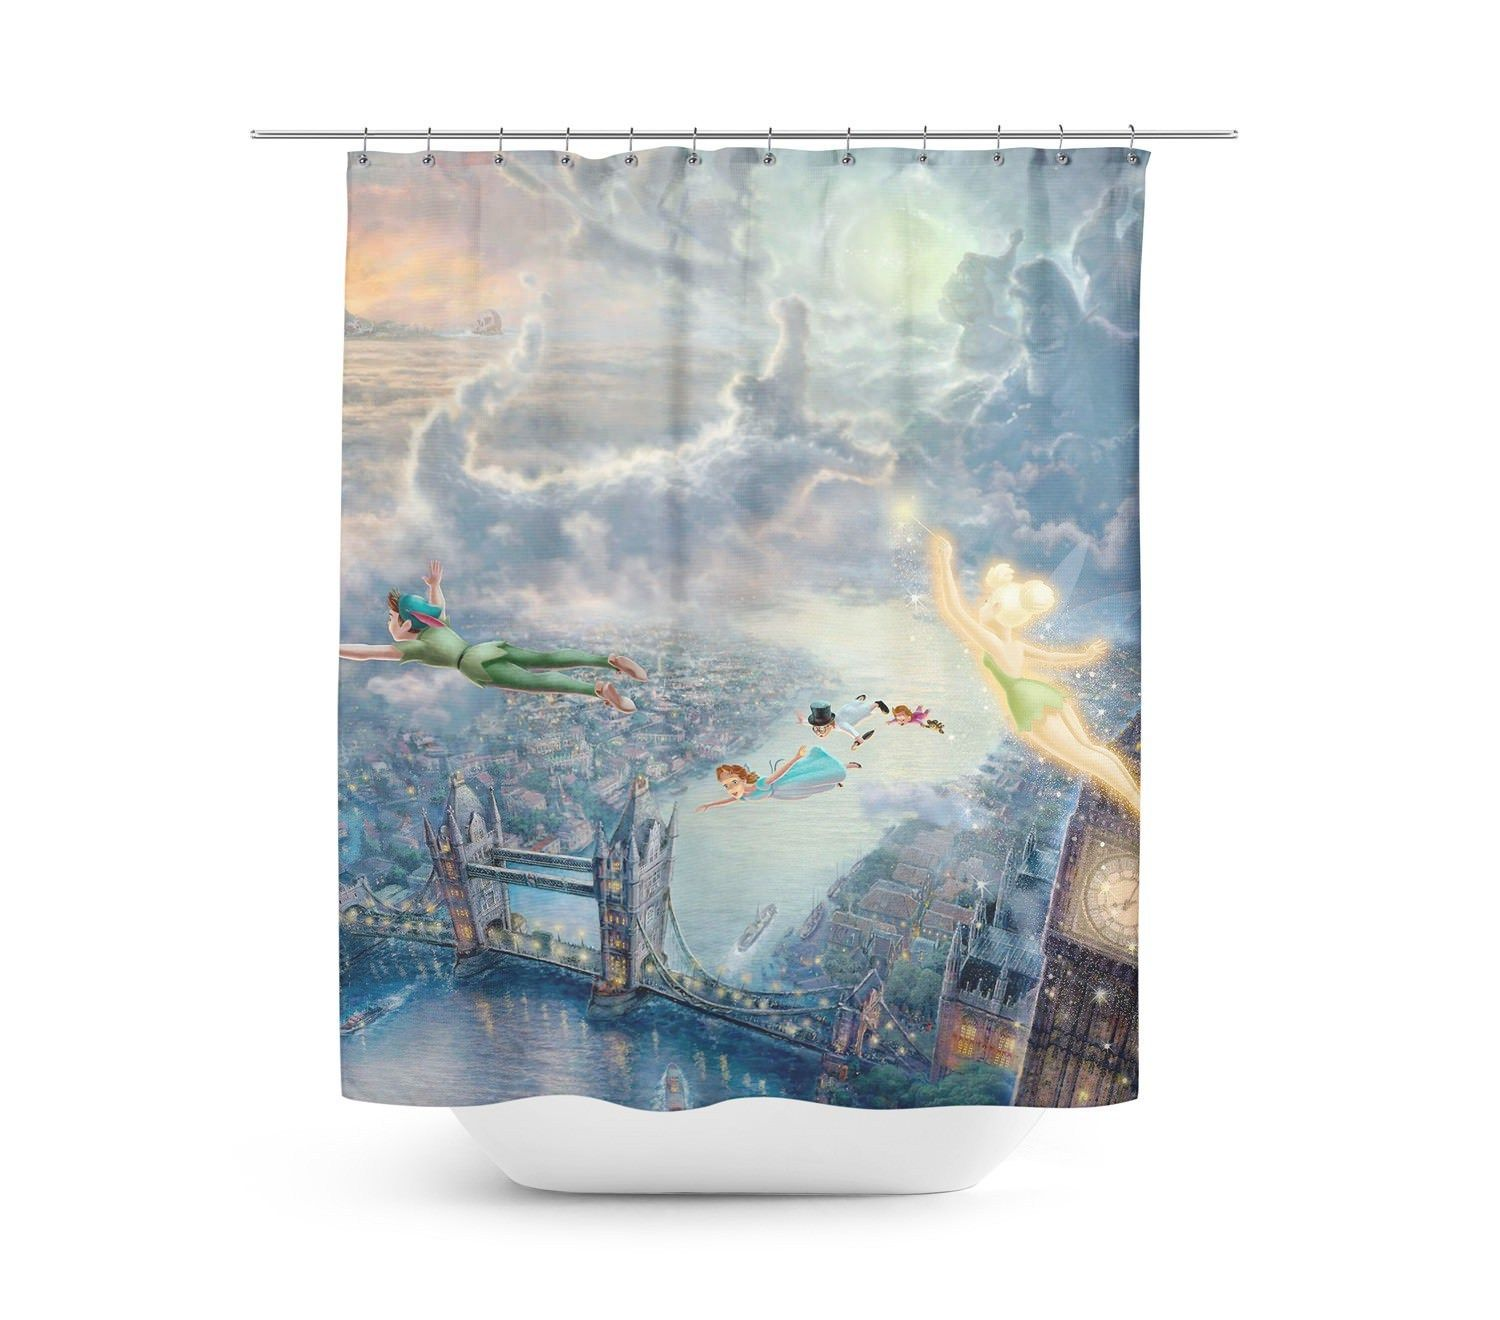 Peter Pan Disney Painting Shower Curtain